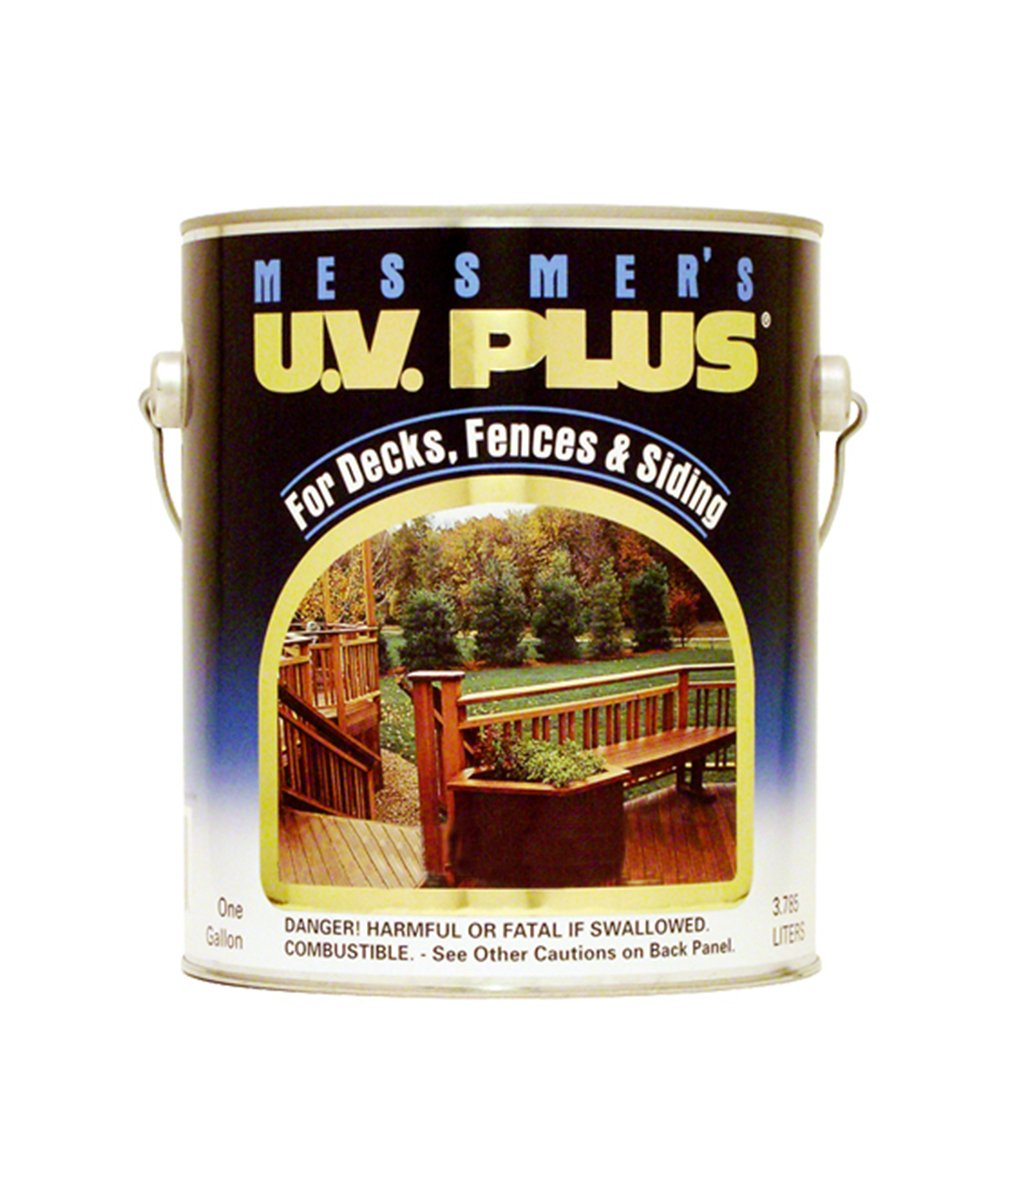 Messmers UV Natural Finish, available at Catalina Paints in CA.